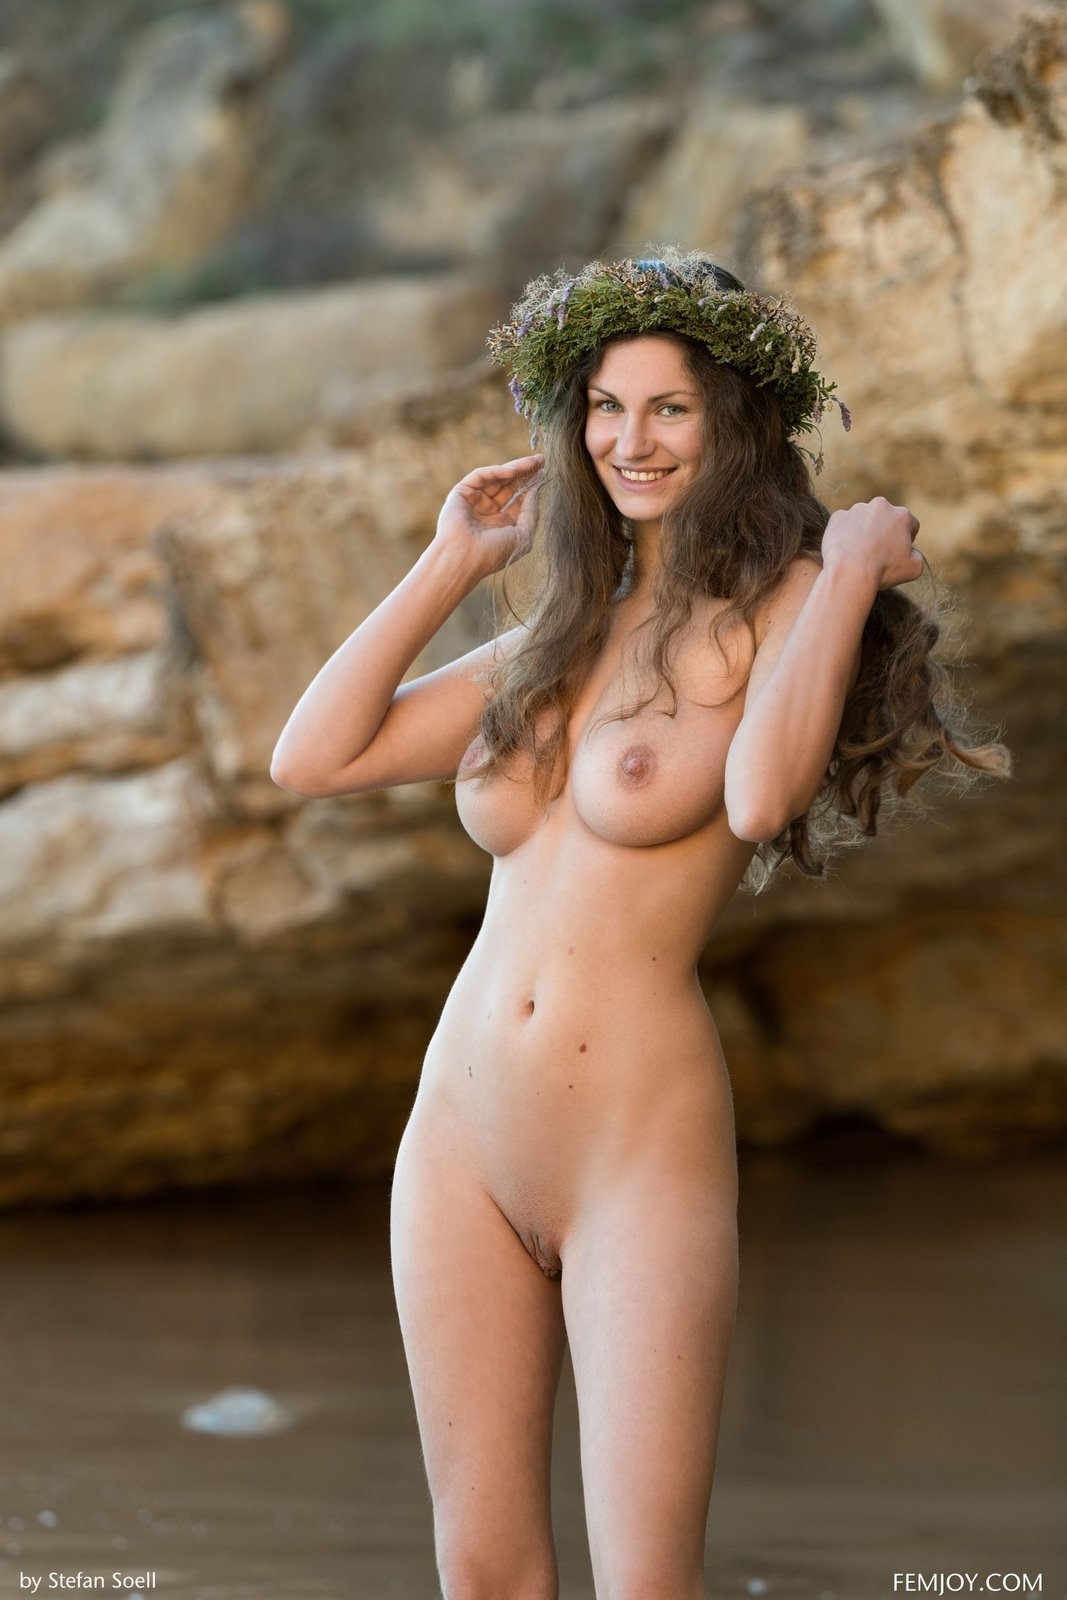 Susann In A New Beginning By Femjoy 12 Photos  Erotic -8896